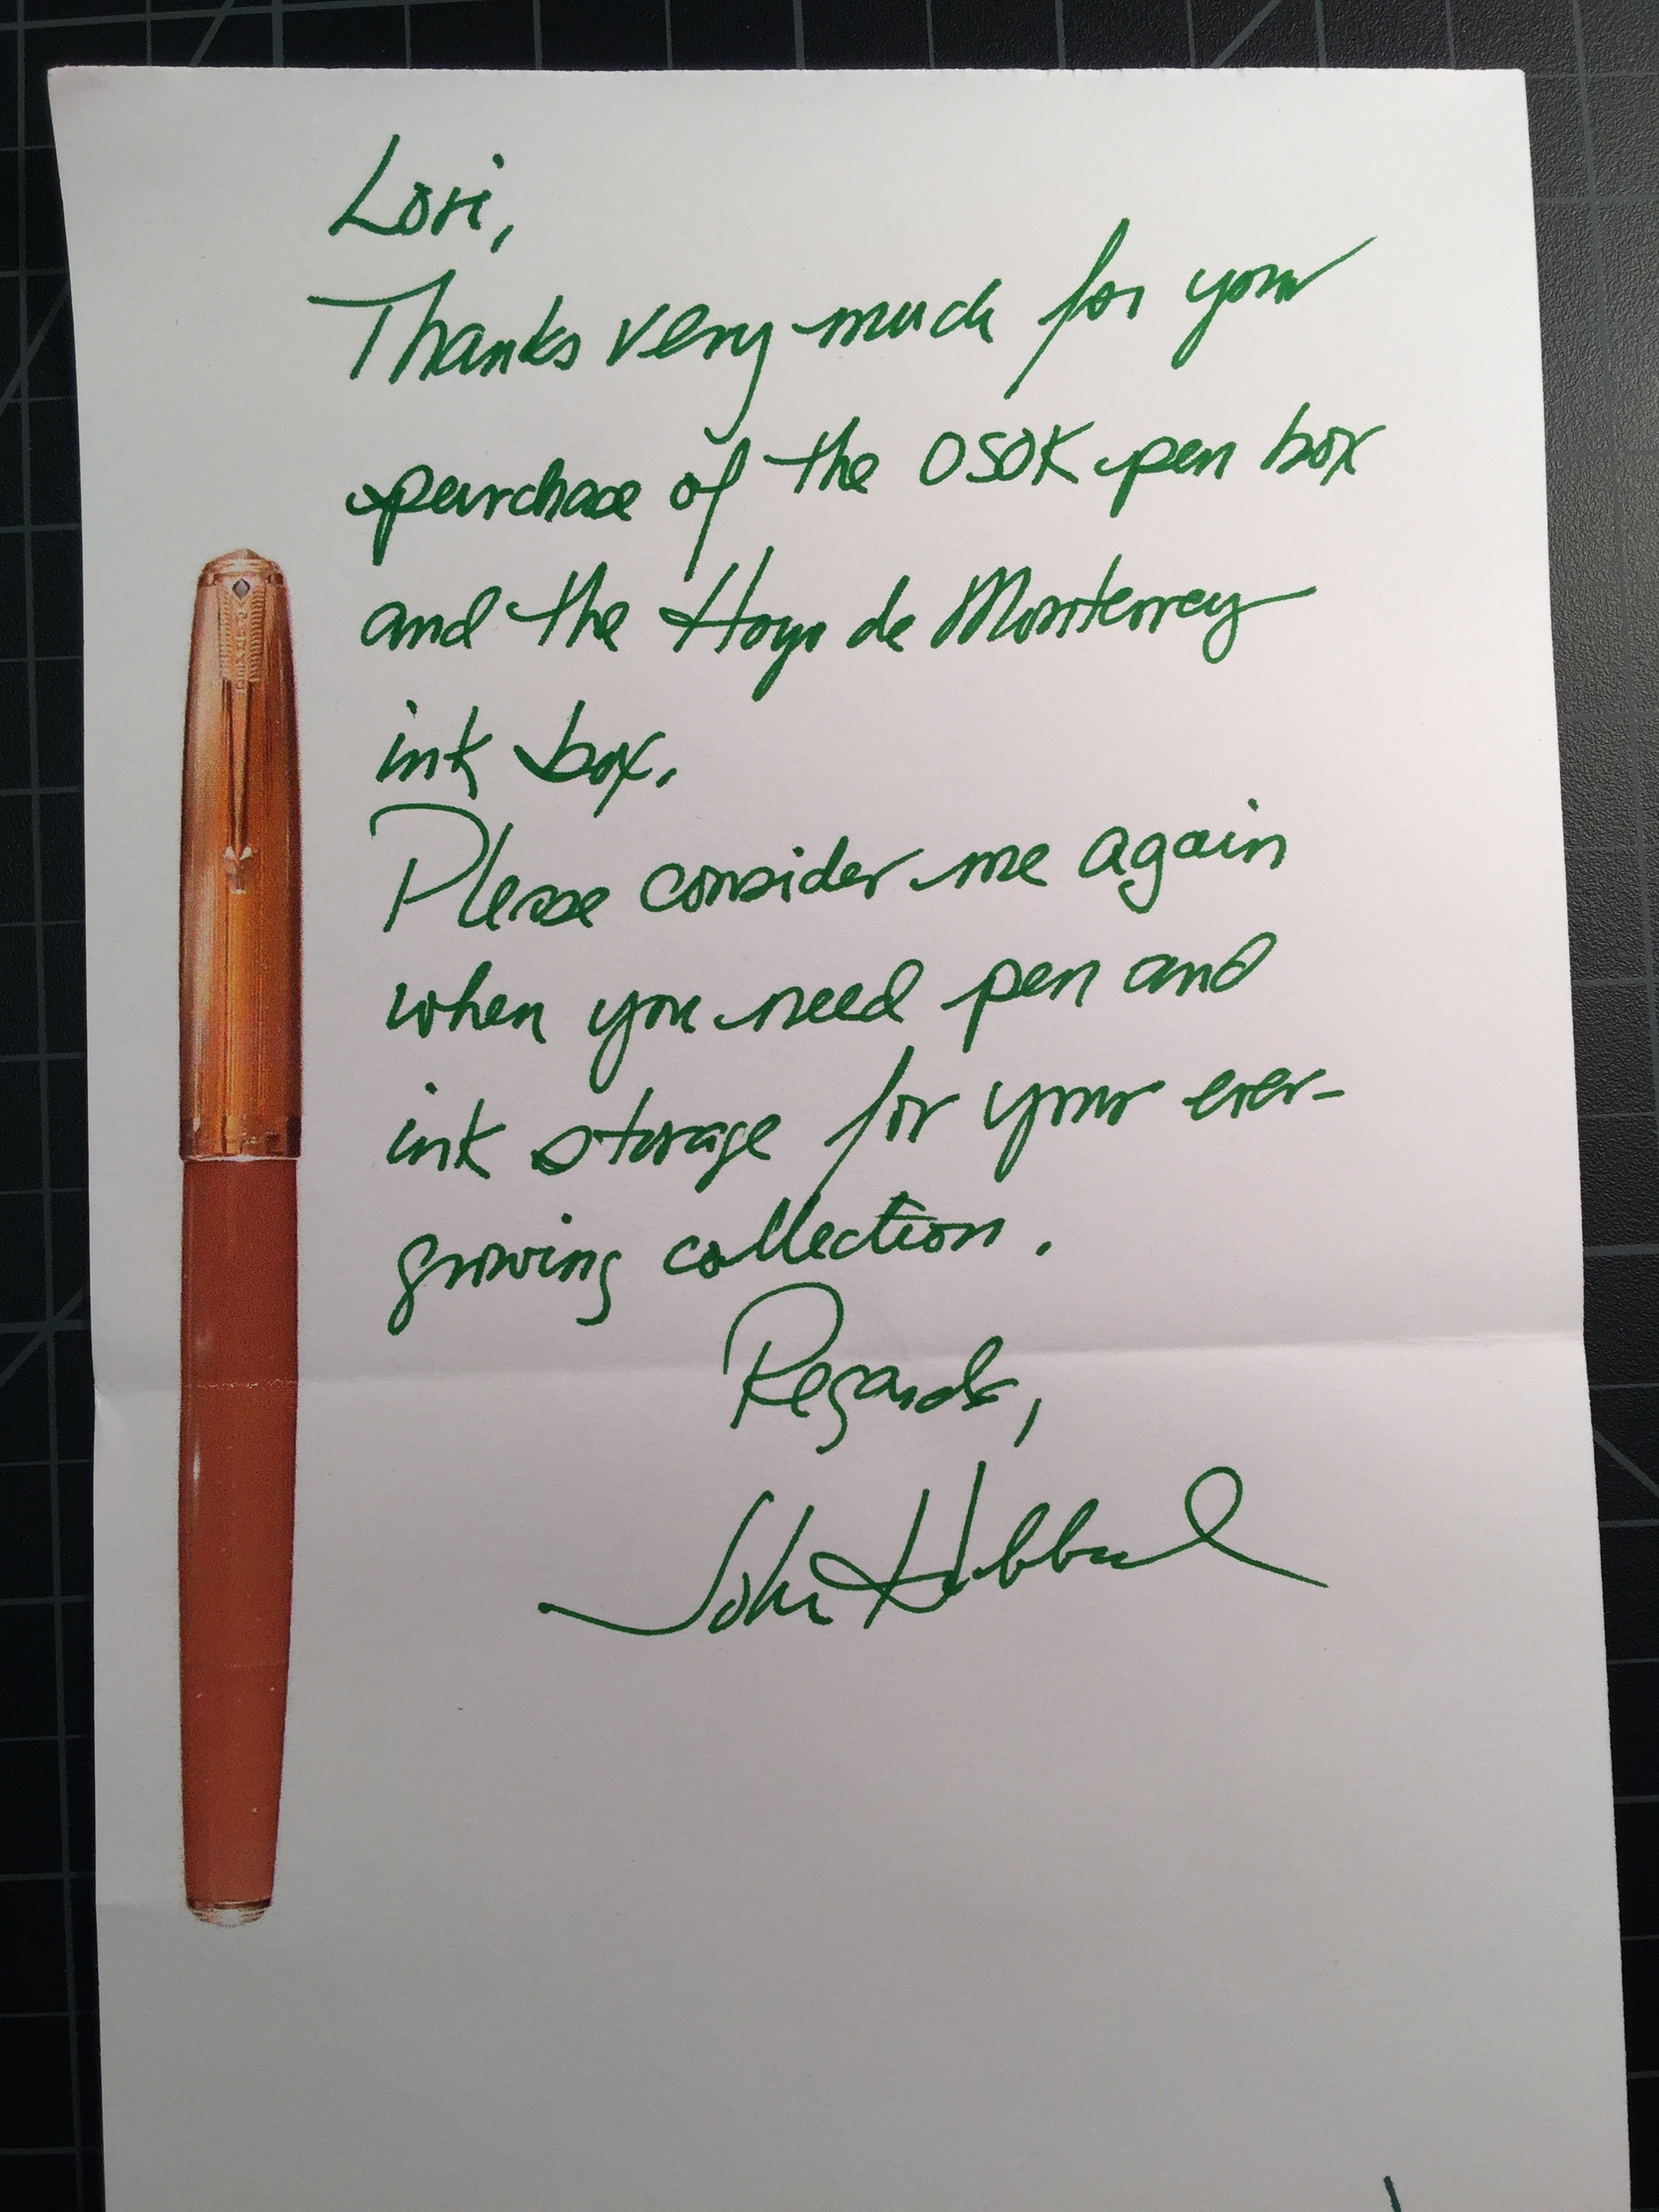 Nice handwritten note included with my purchase